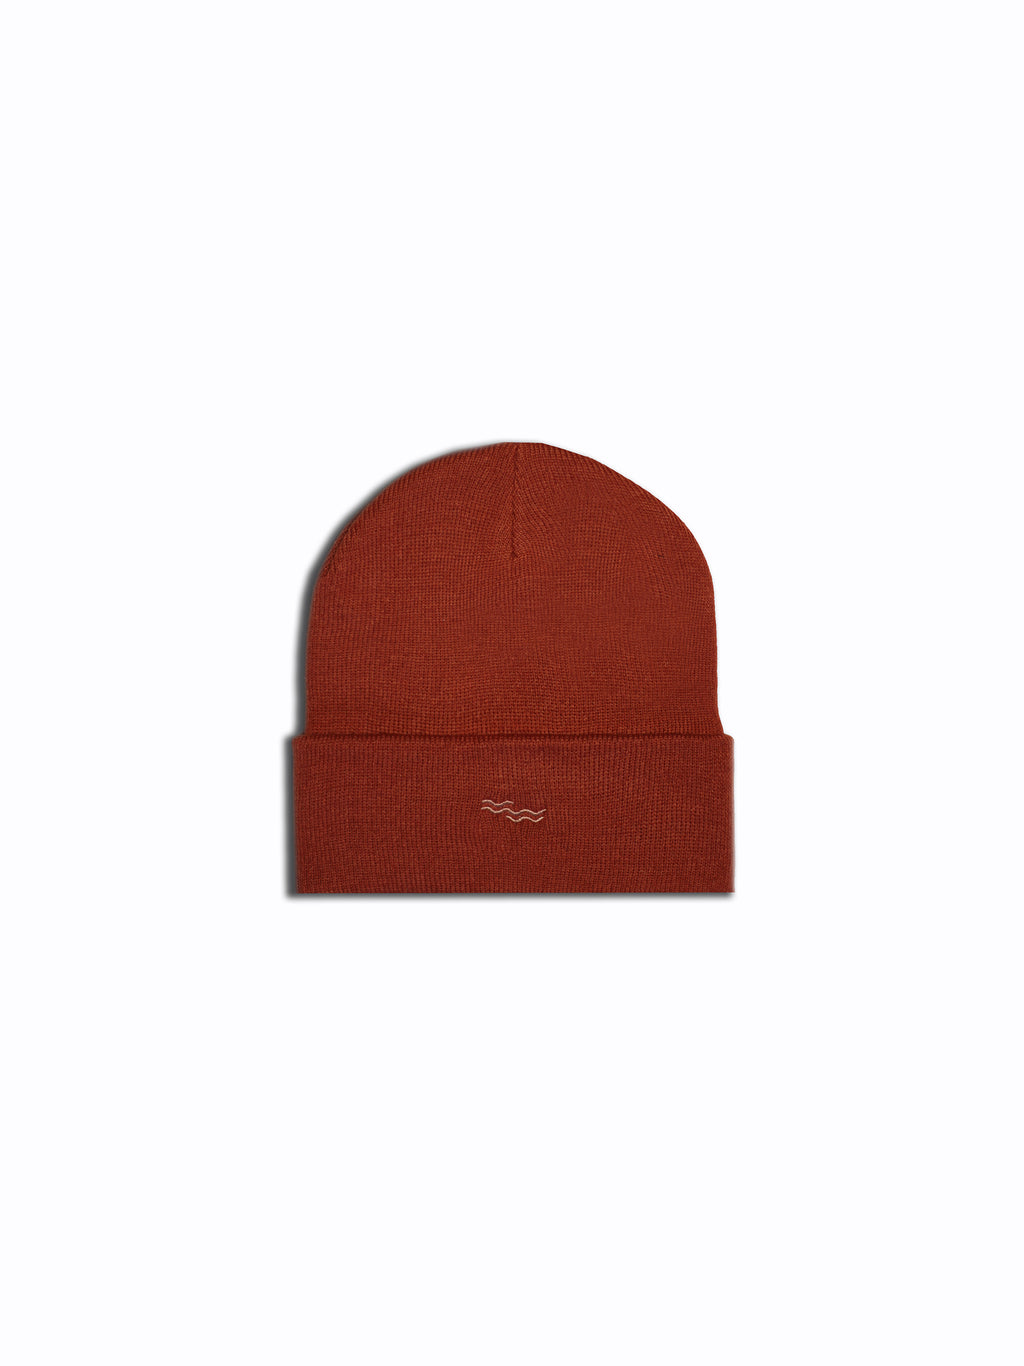 THE RUST BEANIE